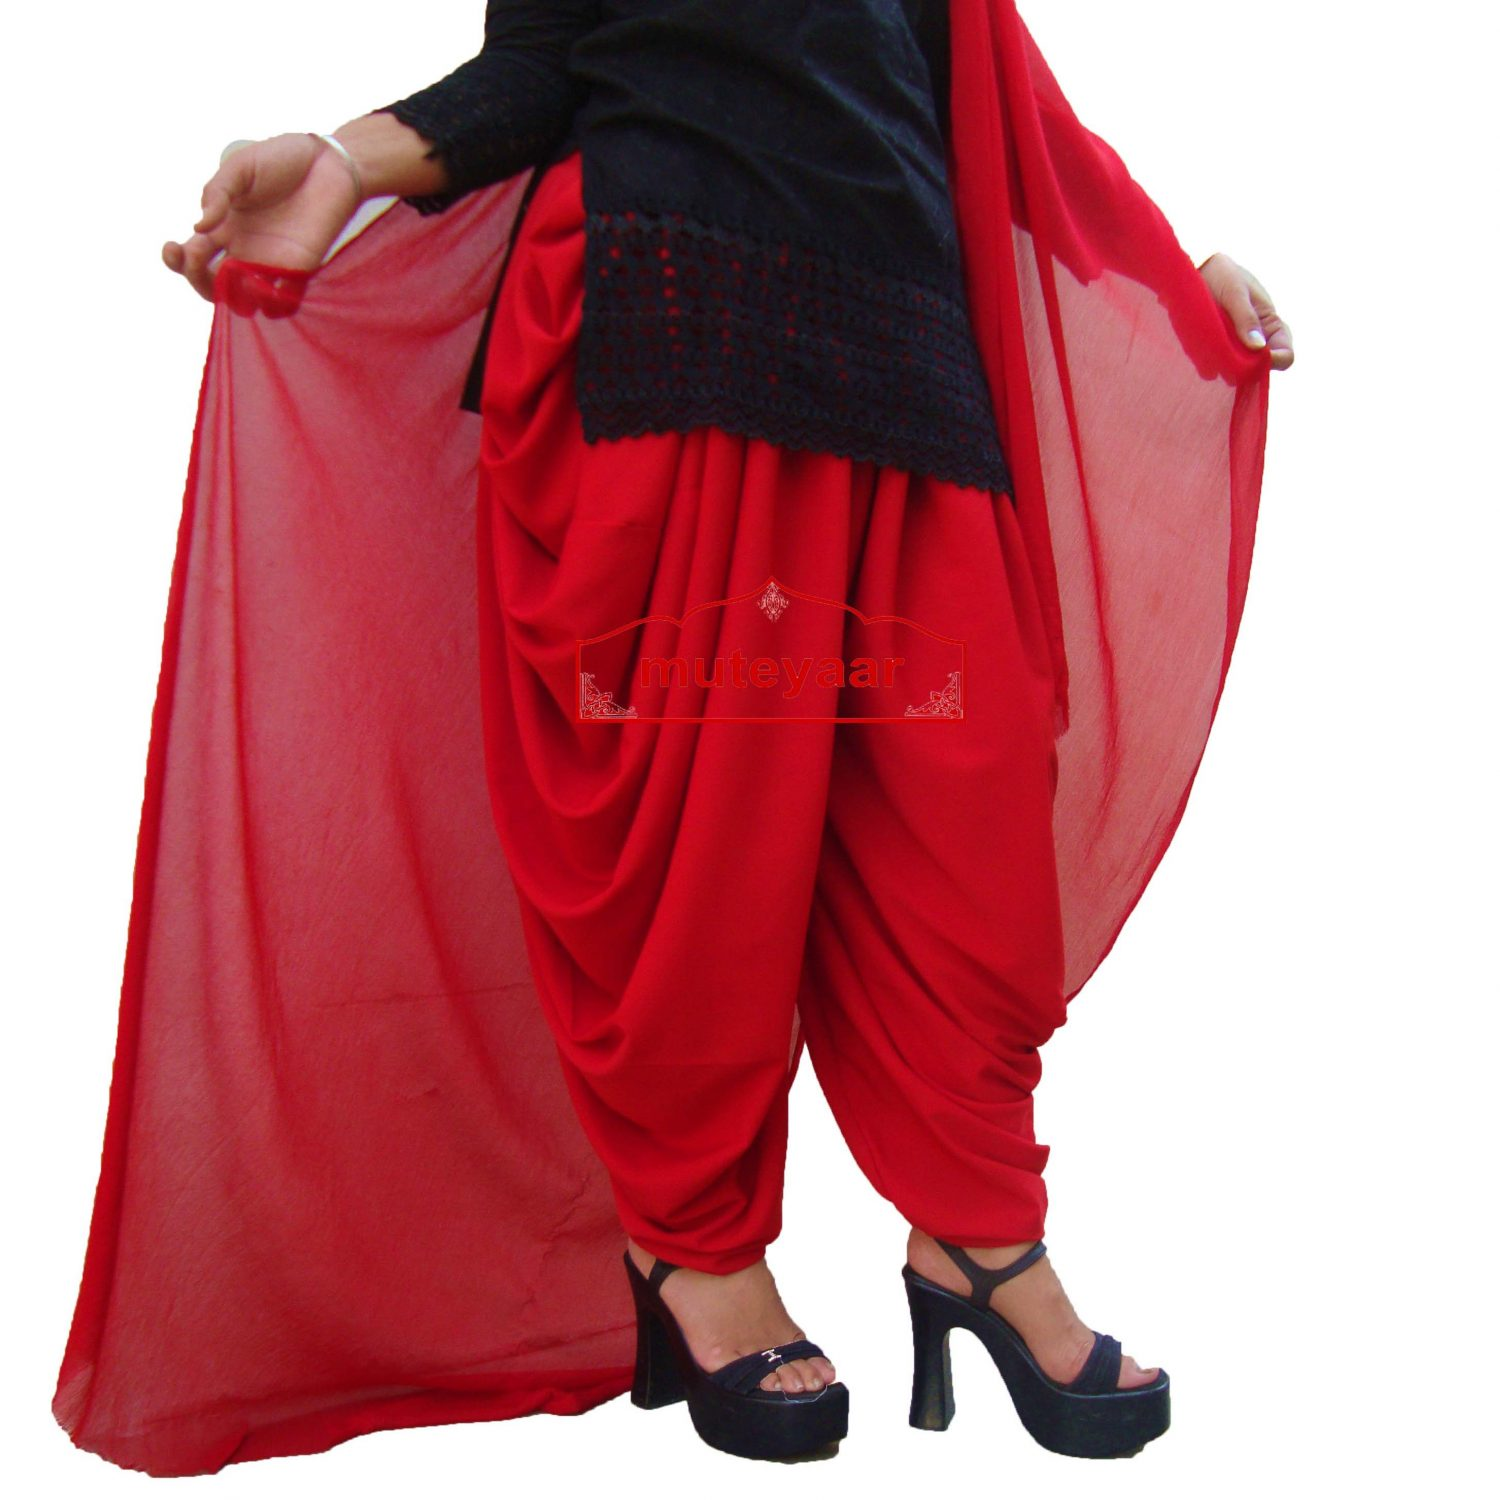 Crepe Dhoti Salwar with Chiffon Dupatta - All colours/sizes available 2